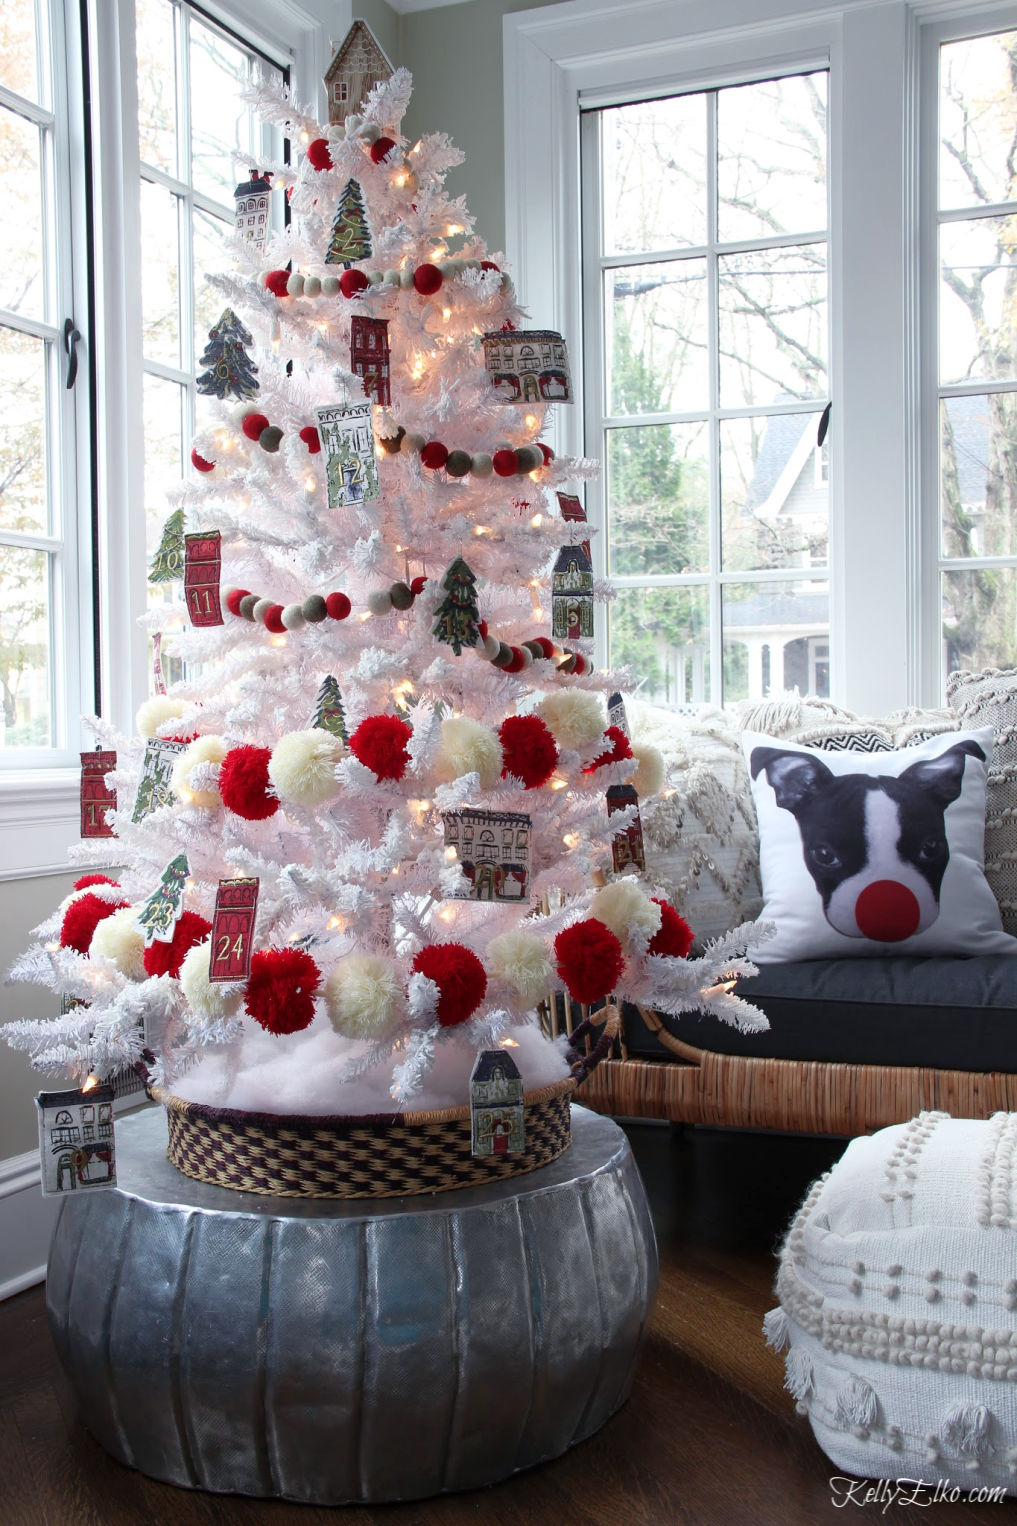 Creative Christmas Home tour - love this flocked white Christmas tree with red and white garland kellyelko.com #christmas #christmasdecor #christmasdecorating #christmashome #christmastour #diychristmas #christmasideas #christmasmantel #christmastree #christmasornaments #vintagechristmas #farmhousechristmas #colorfulchristmas #creativechristmas #kellyelko #flockedtree #whitetree #whitechristmastree #rattanfurniture #countdowntochristmas #bohodecor #bostonterrier